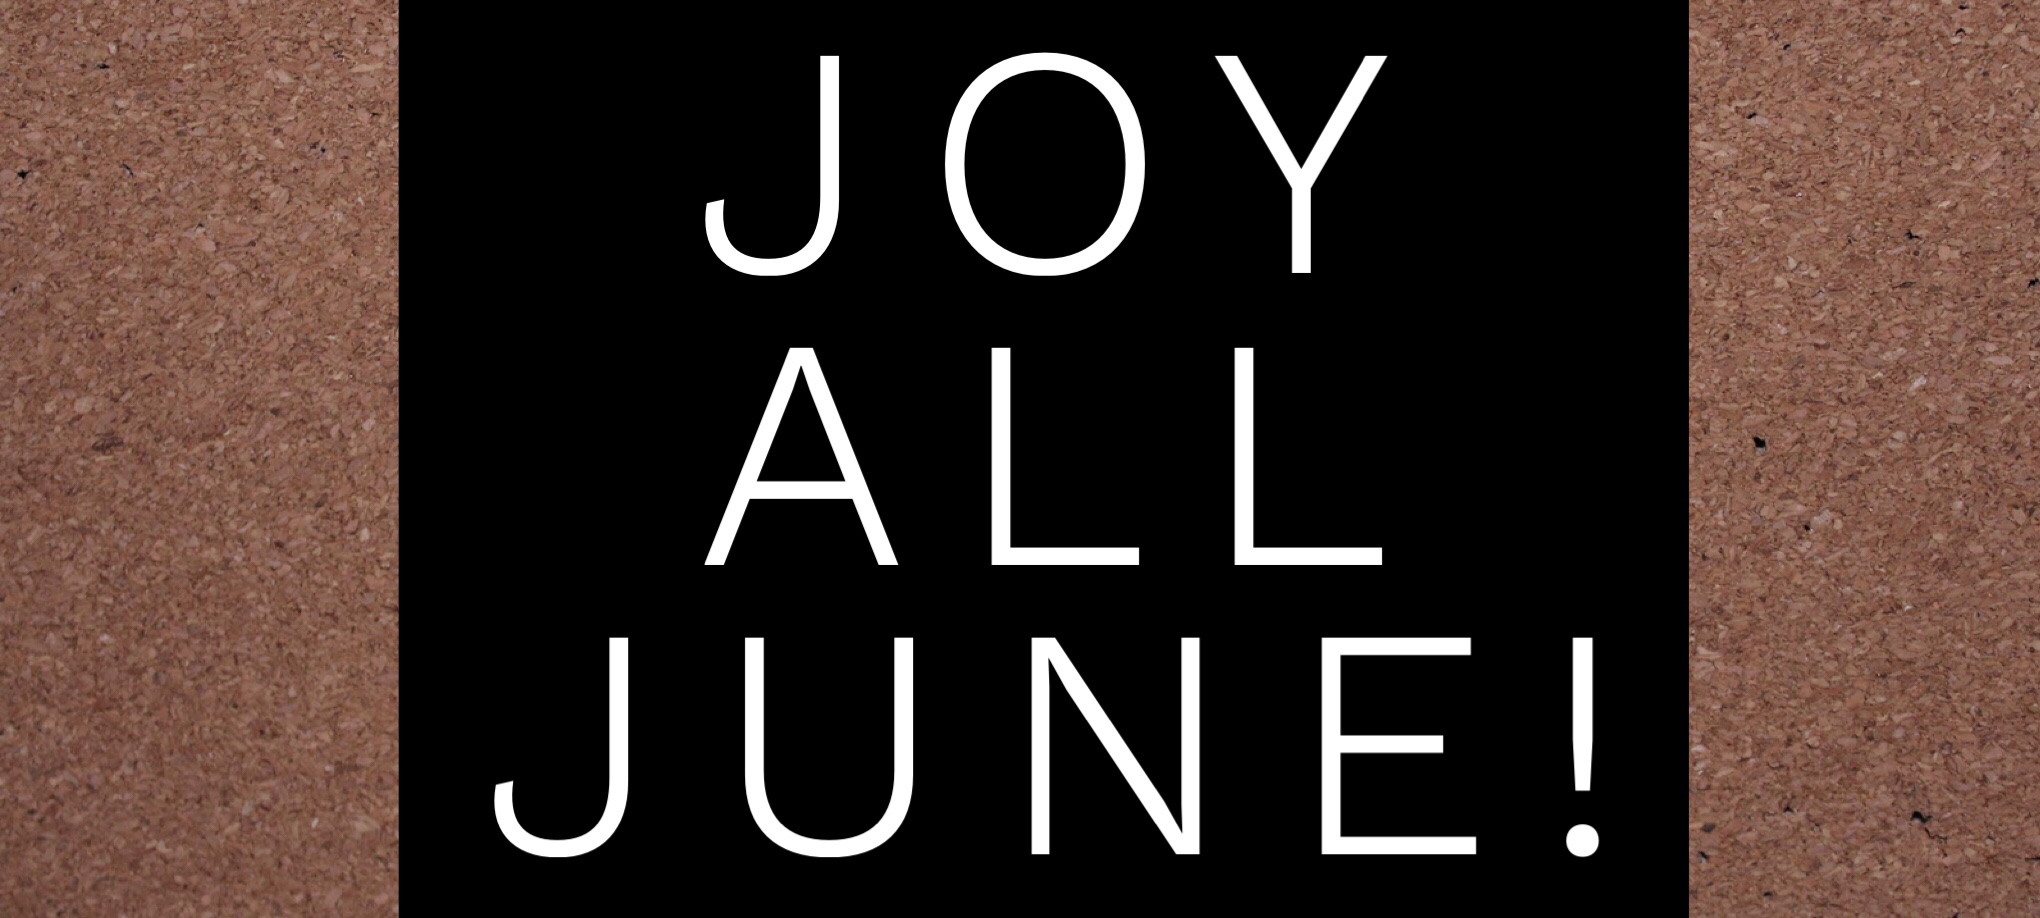 Joy All June